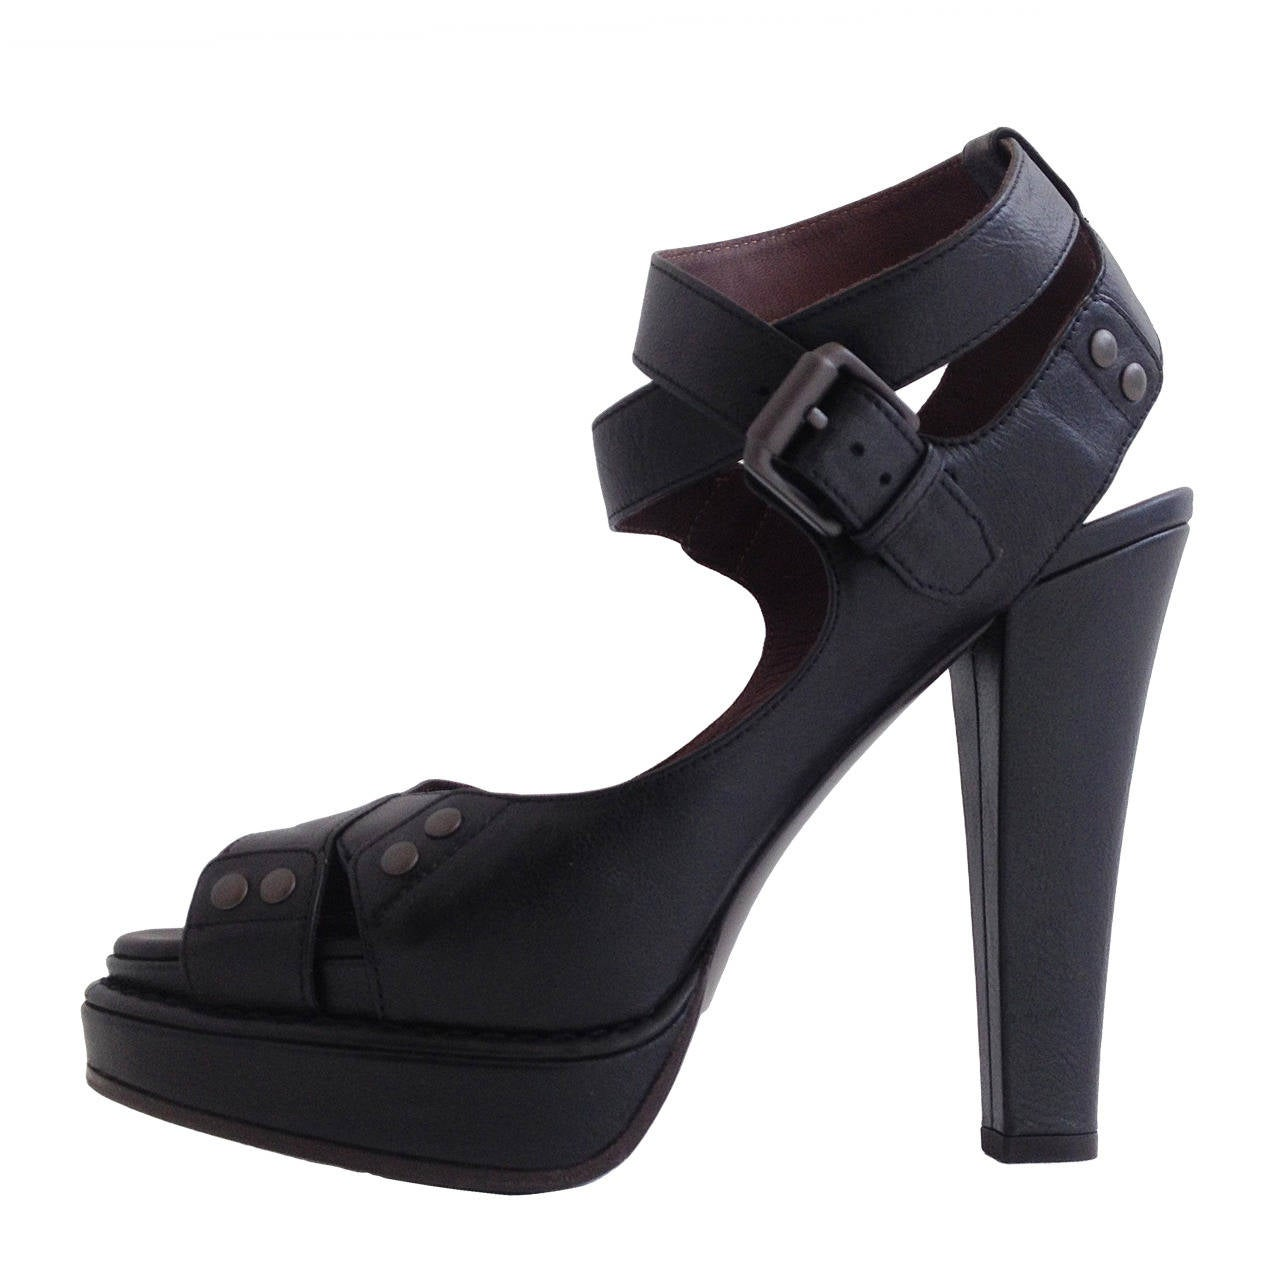 Bottega Veneta Black Platform Sandals For Sale